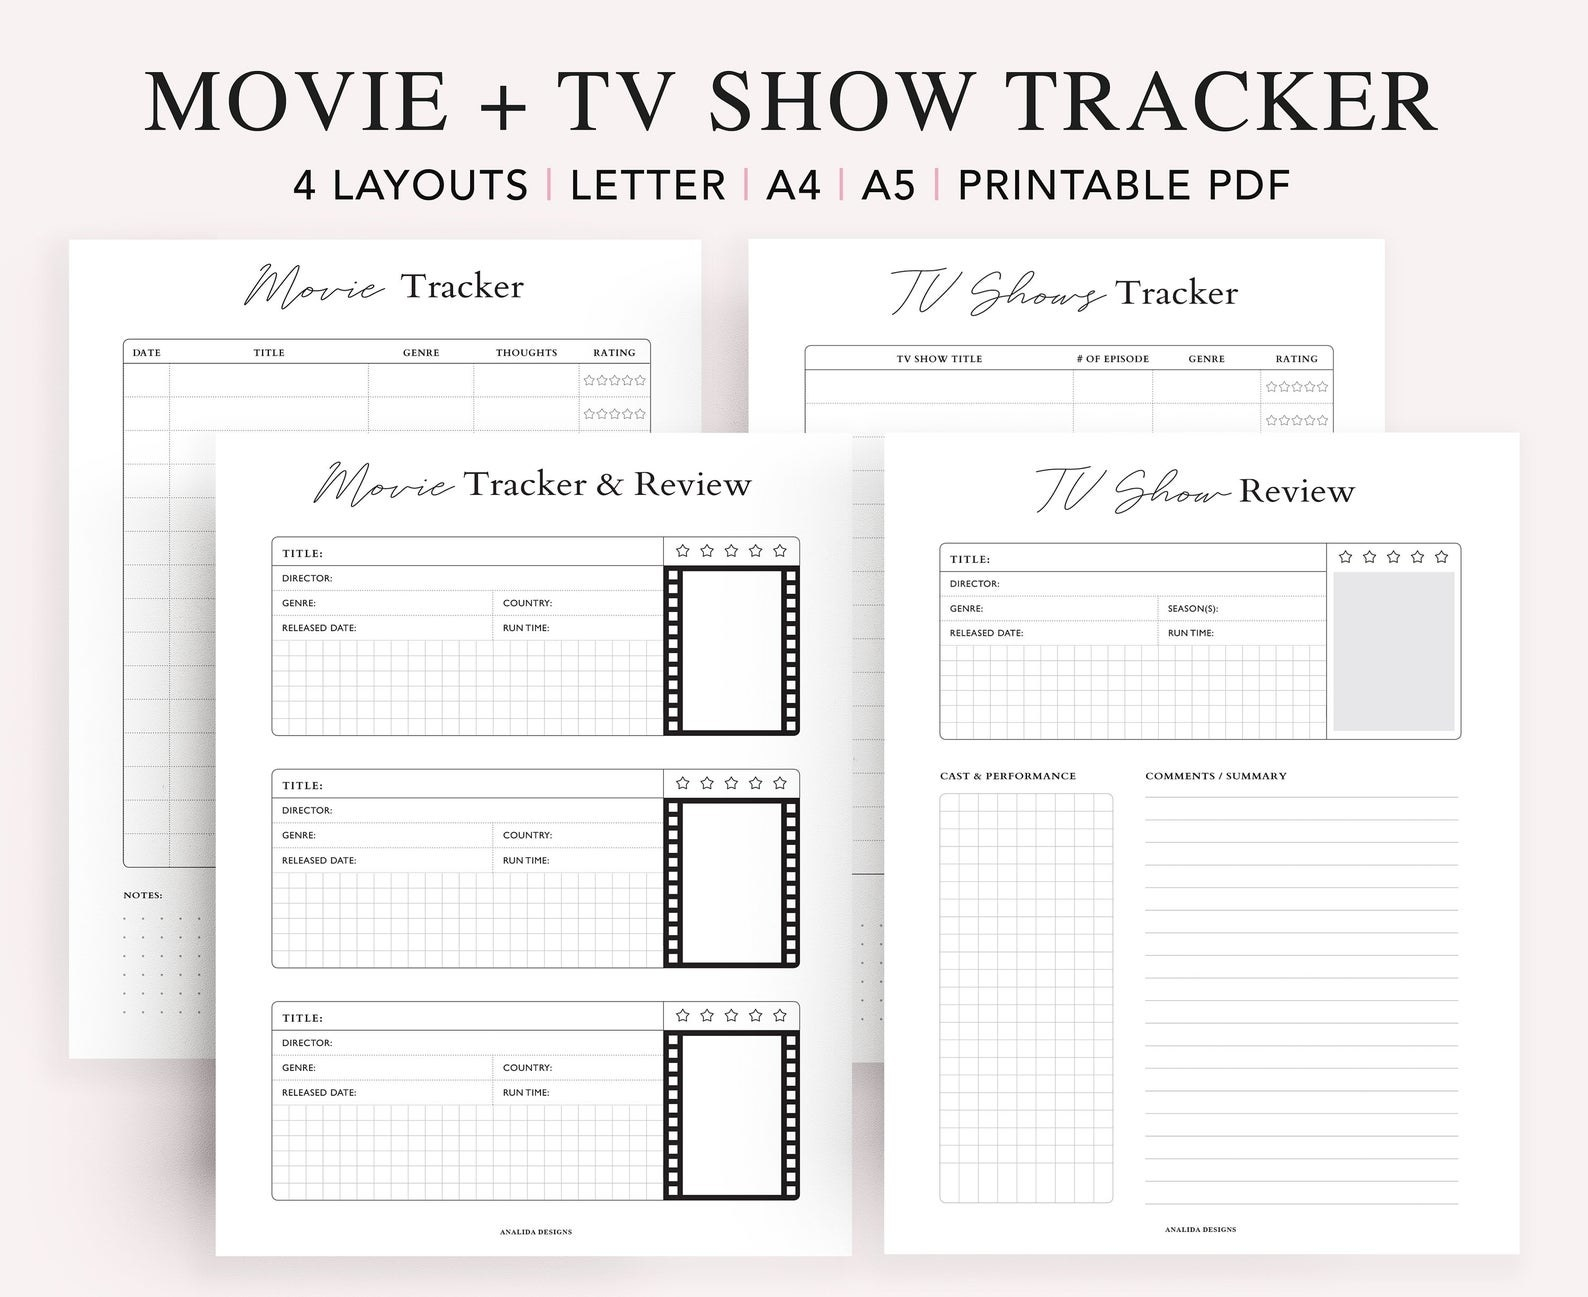 four printable pages with spots for listing movies and tv shows and reviewing movies and tv shows